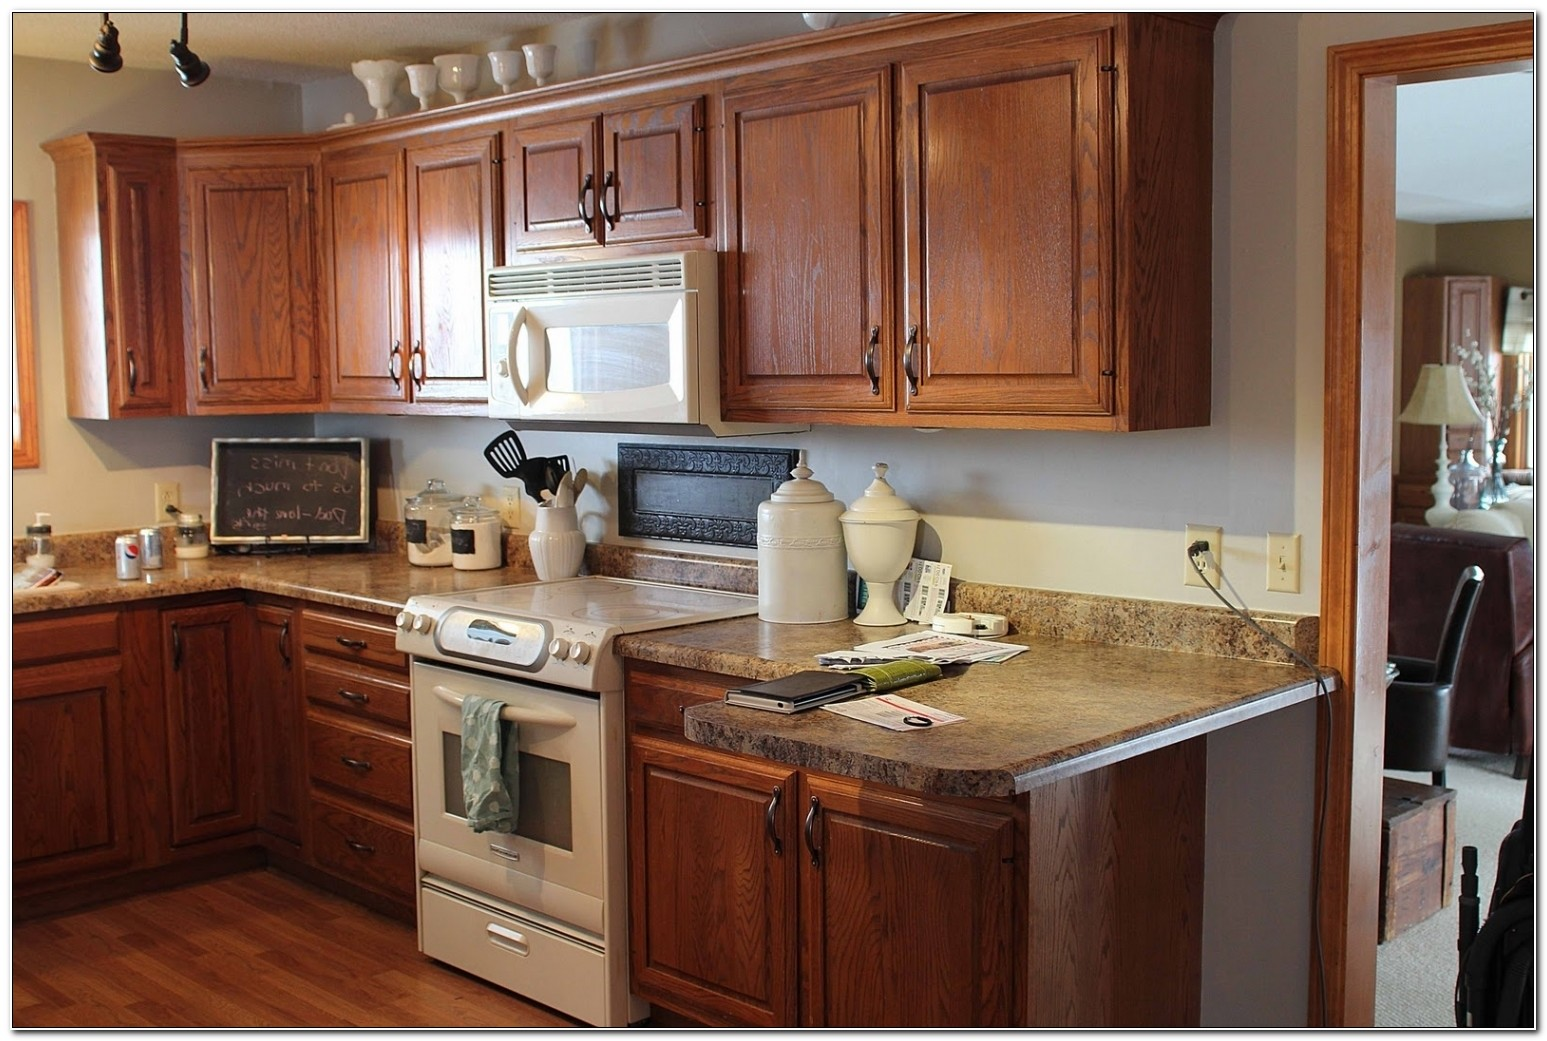 Refinish Kitchen Cabinets Charlotte Nc